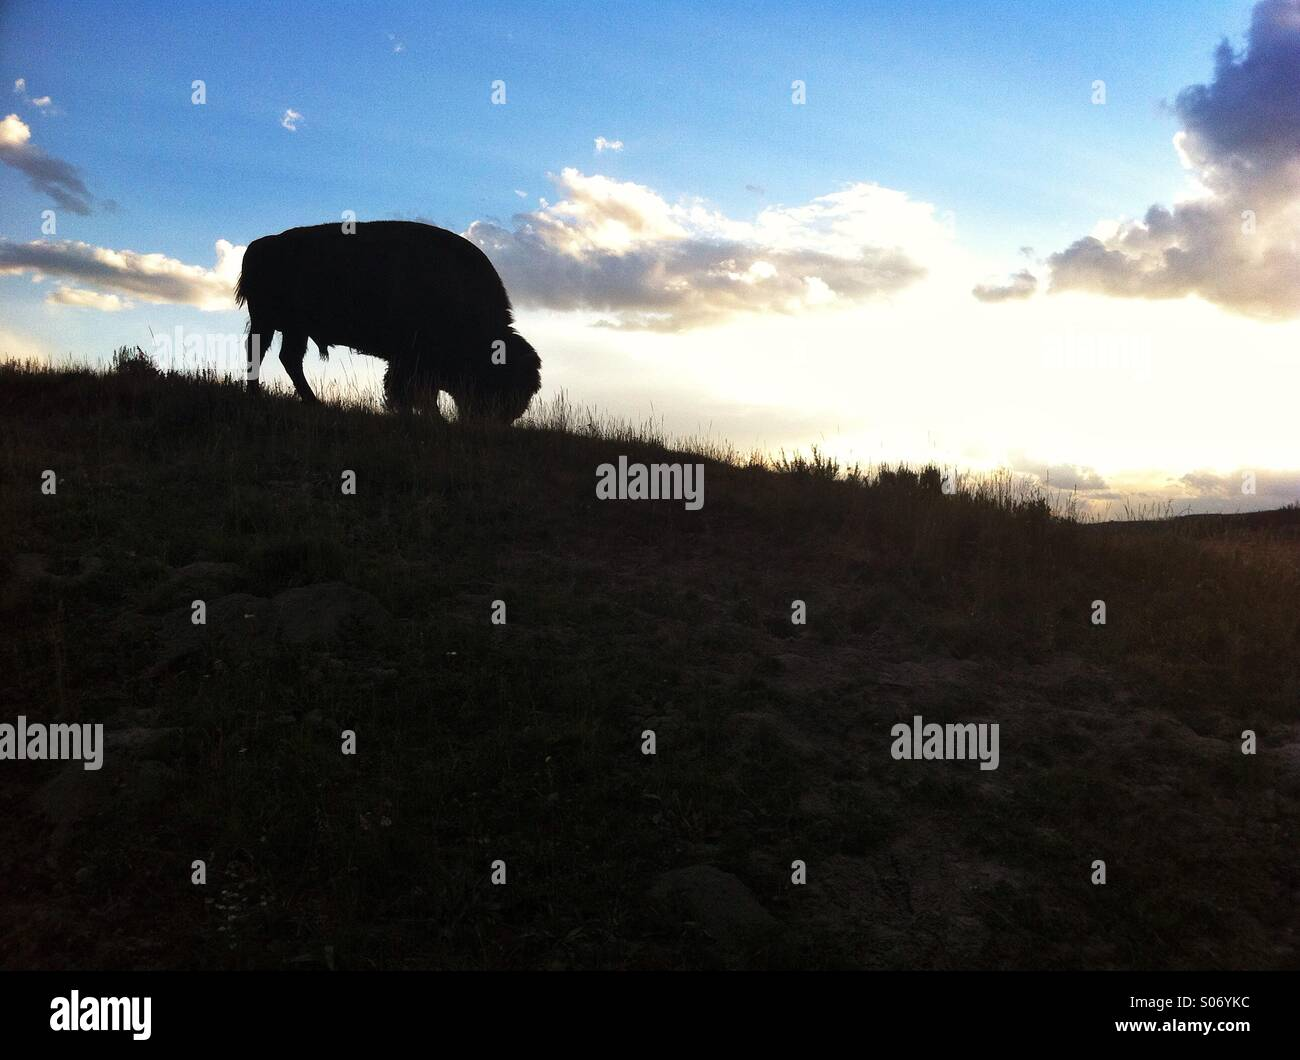 Silhouetted bison on hill - Stock Image